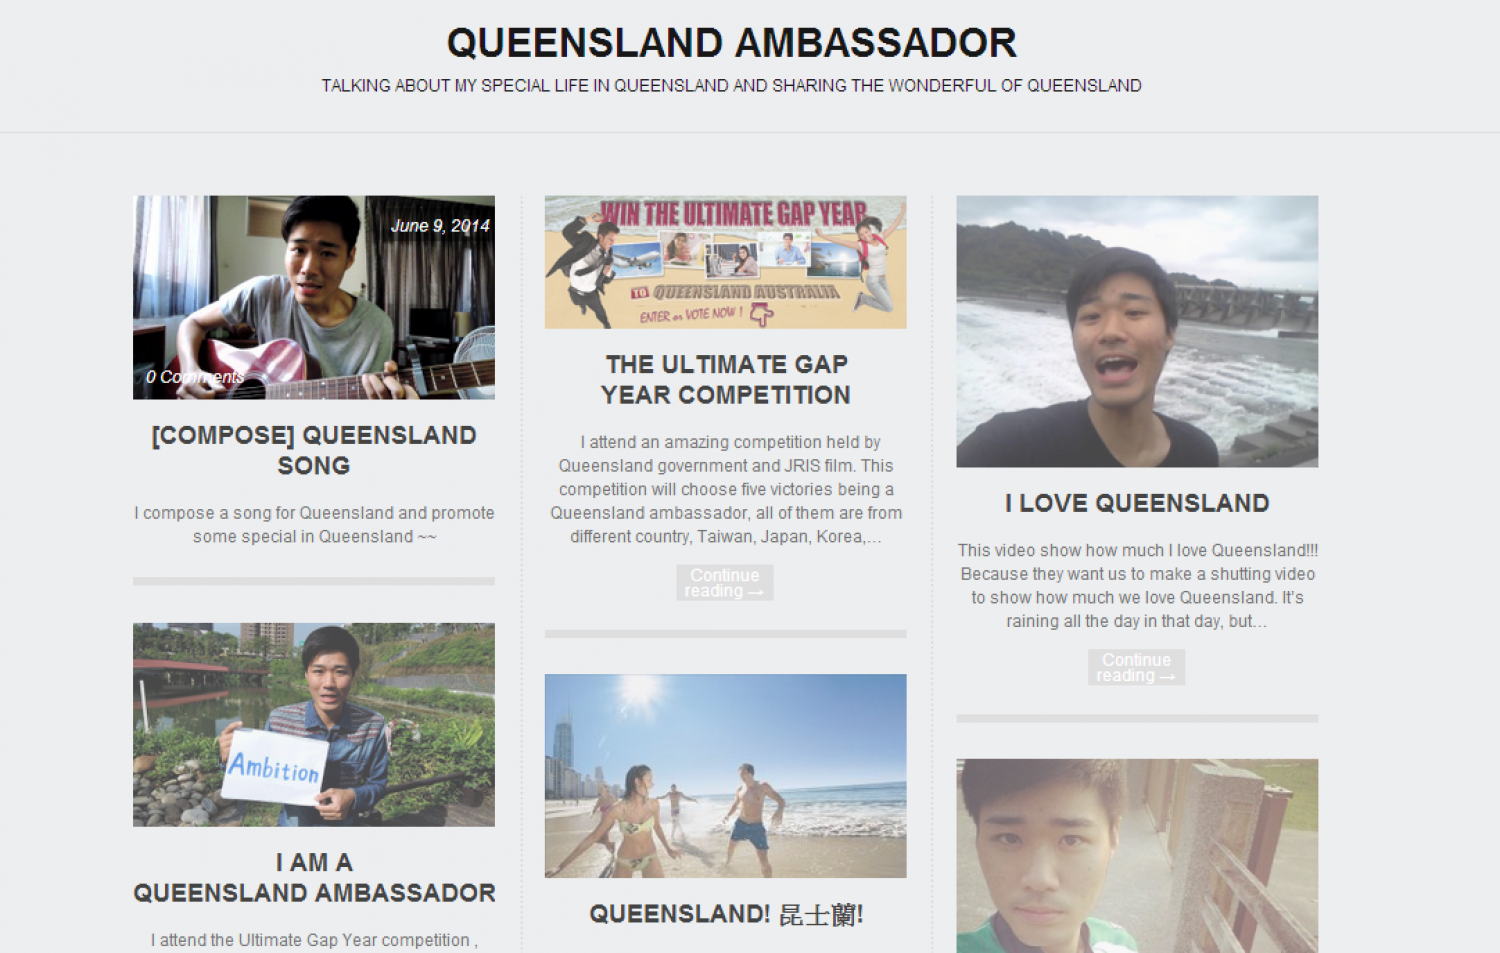 Queensland Ambassador Infographic